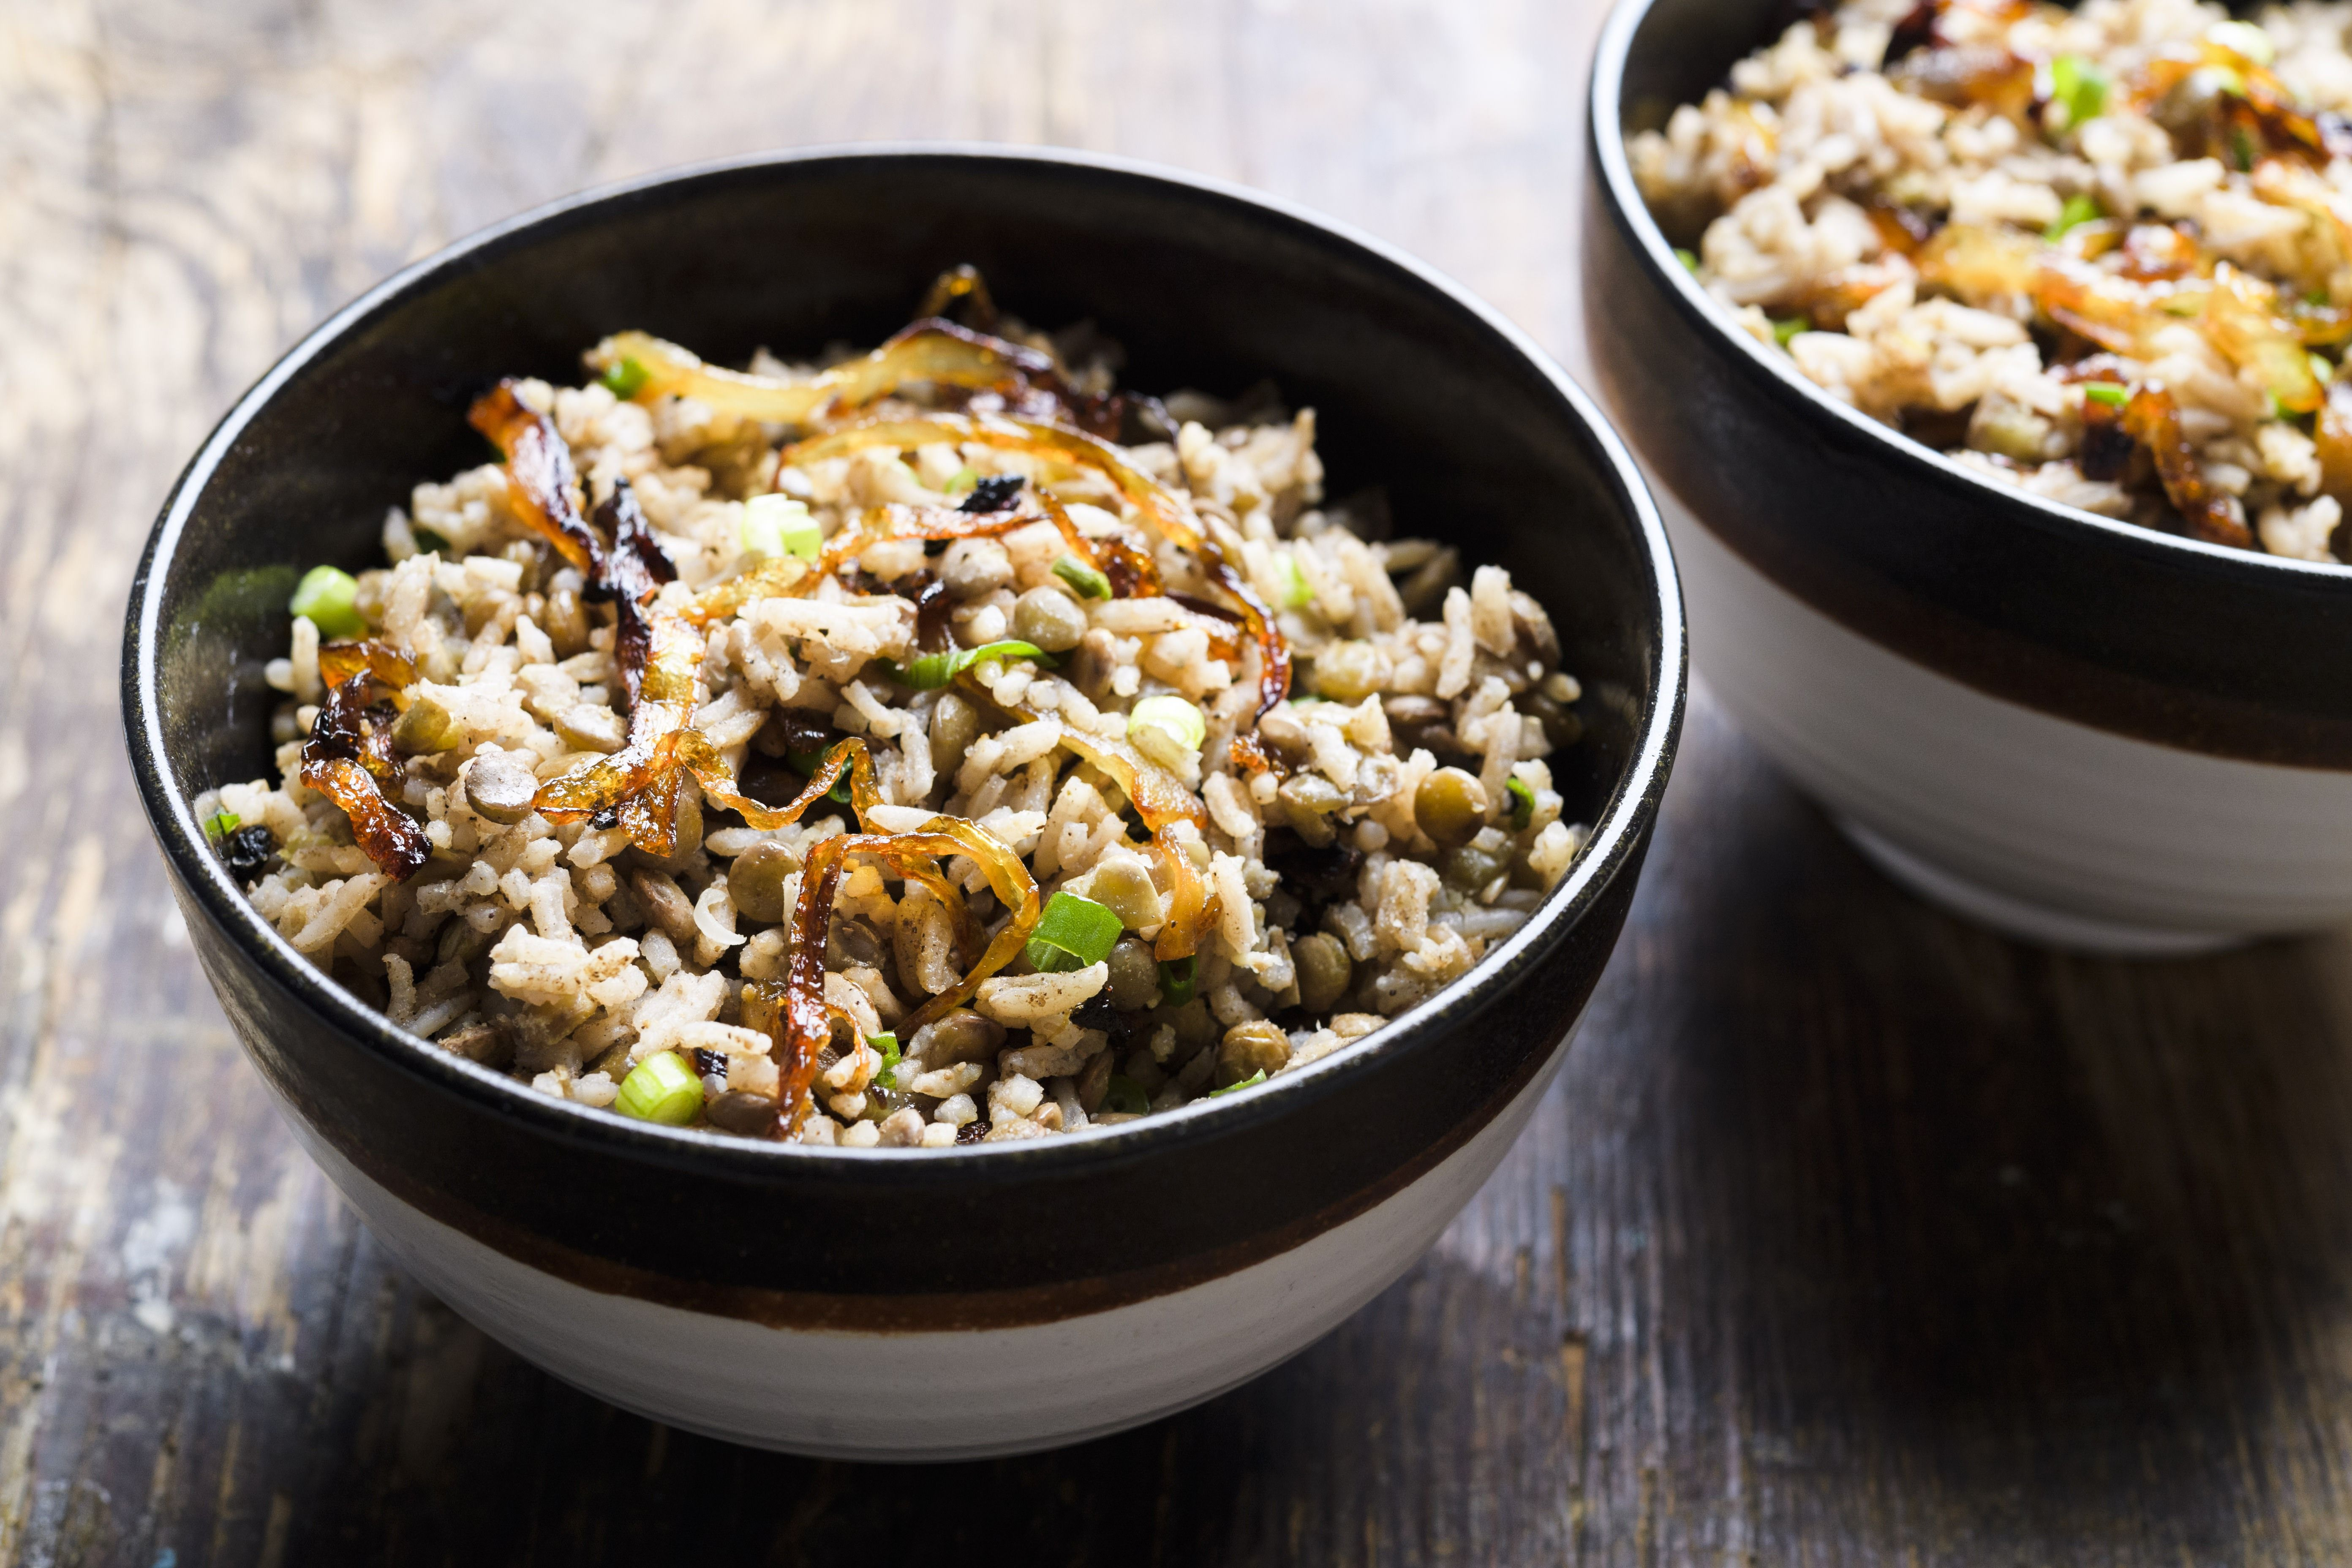 Lebanese Lentils and Rice with Crisped Onions (Mujaddara)